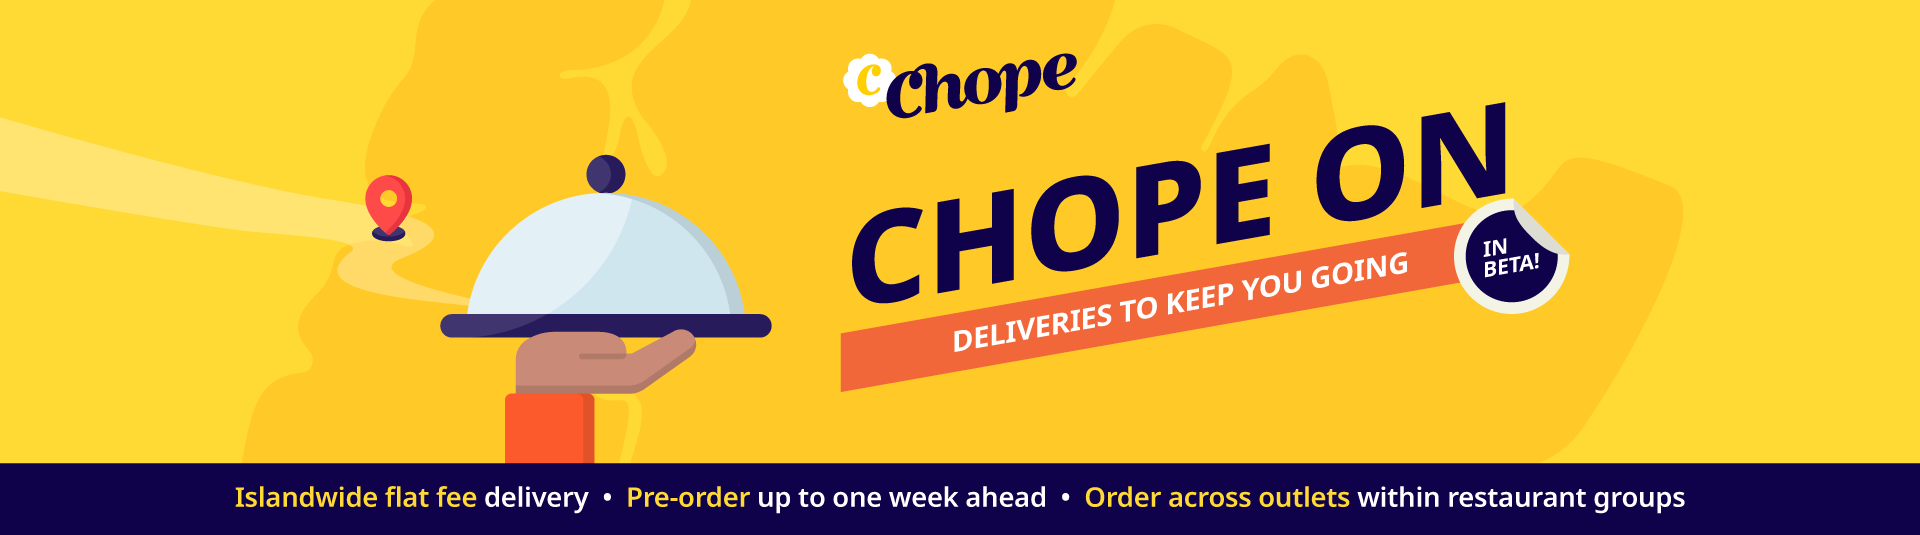 Chope On Delivery